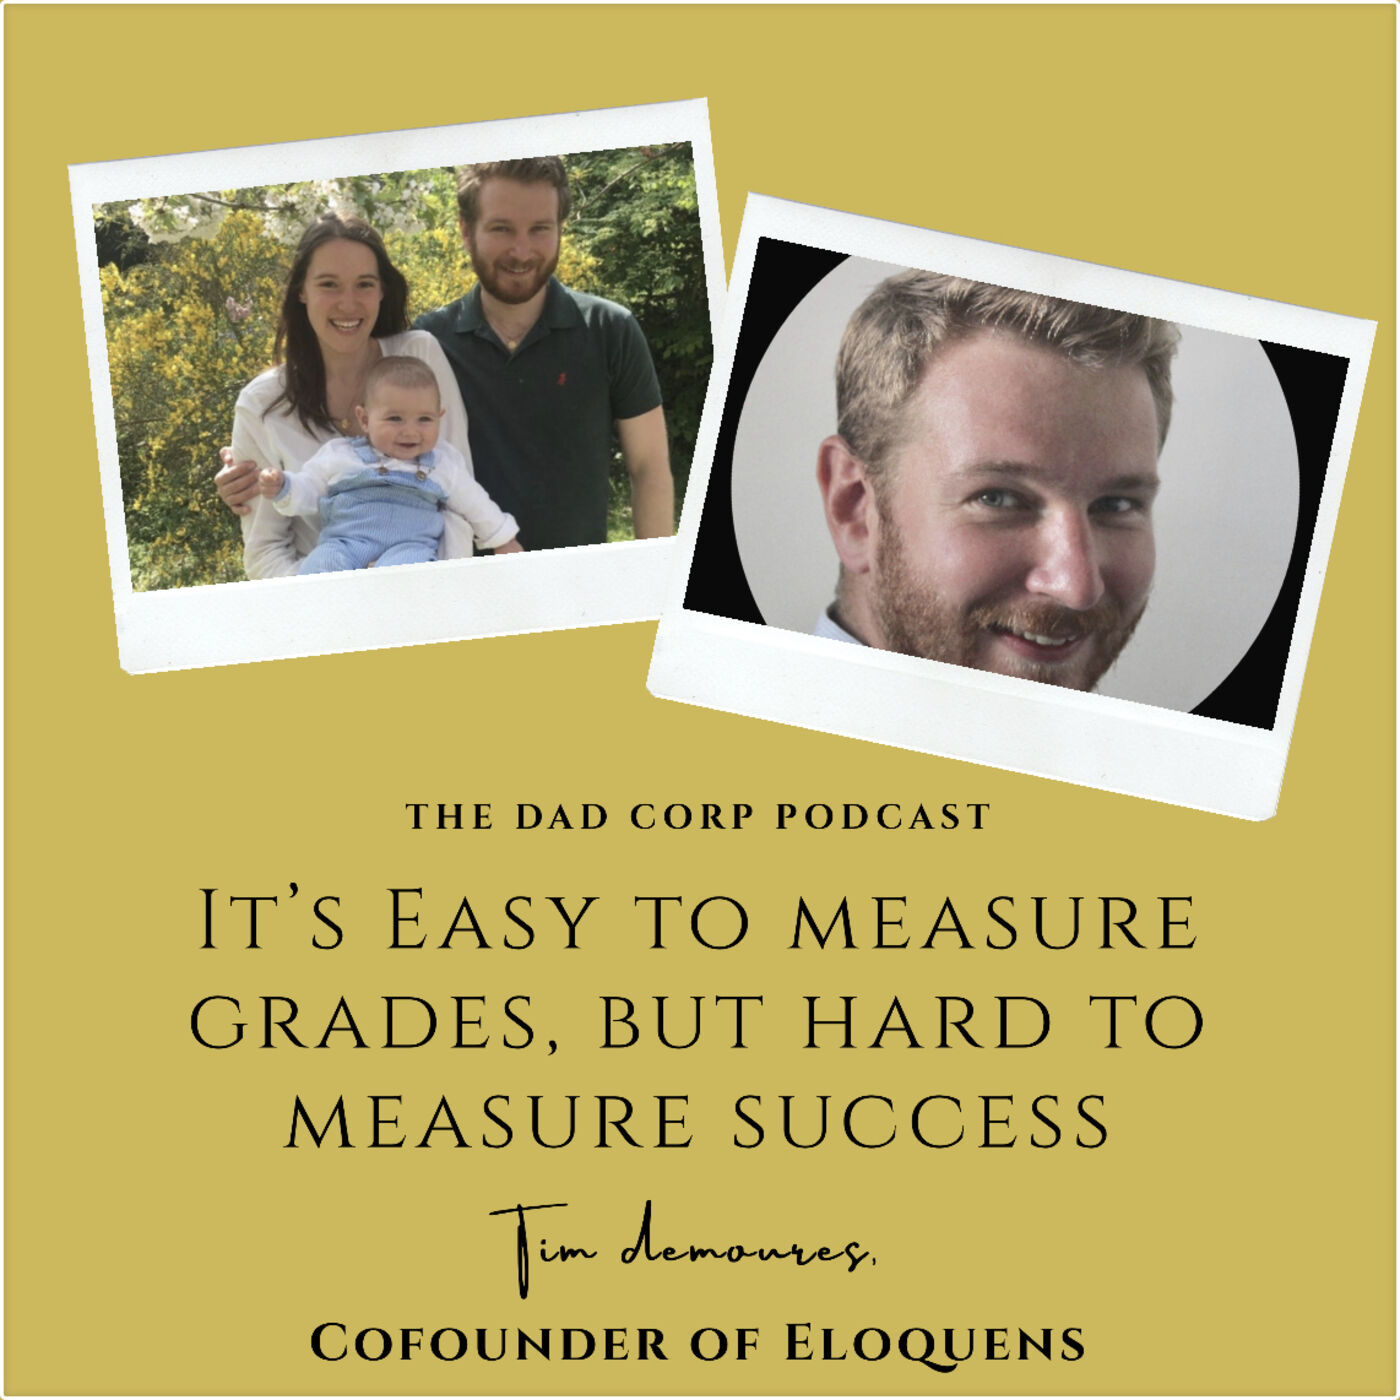 It's Easy to Measure Grades, but Hard to Measure Success with Tim Demoures, MD and Cofounder of Eloquens